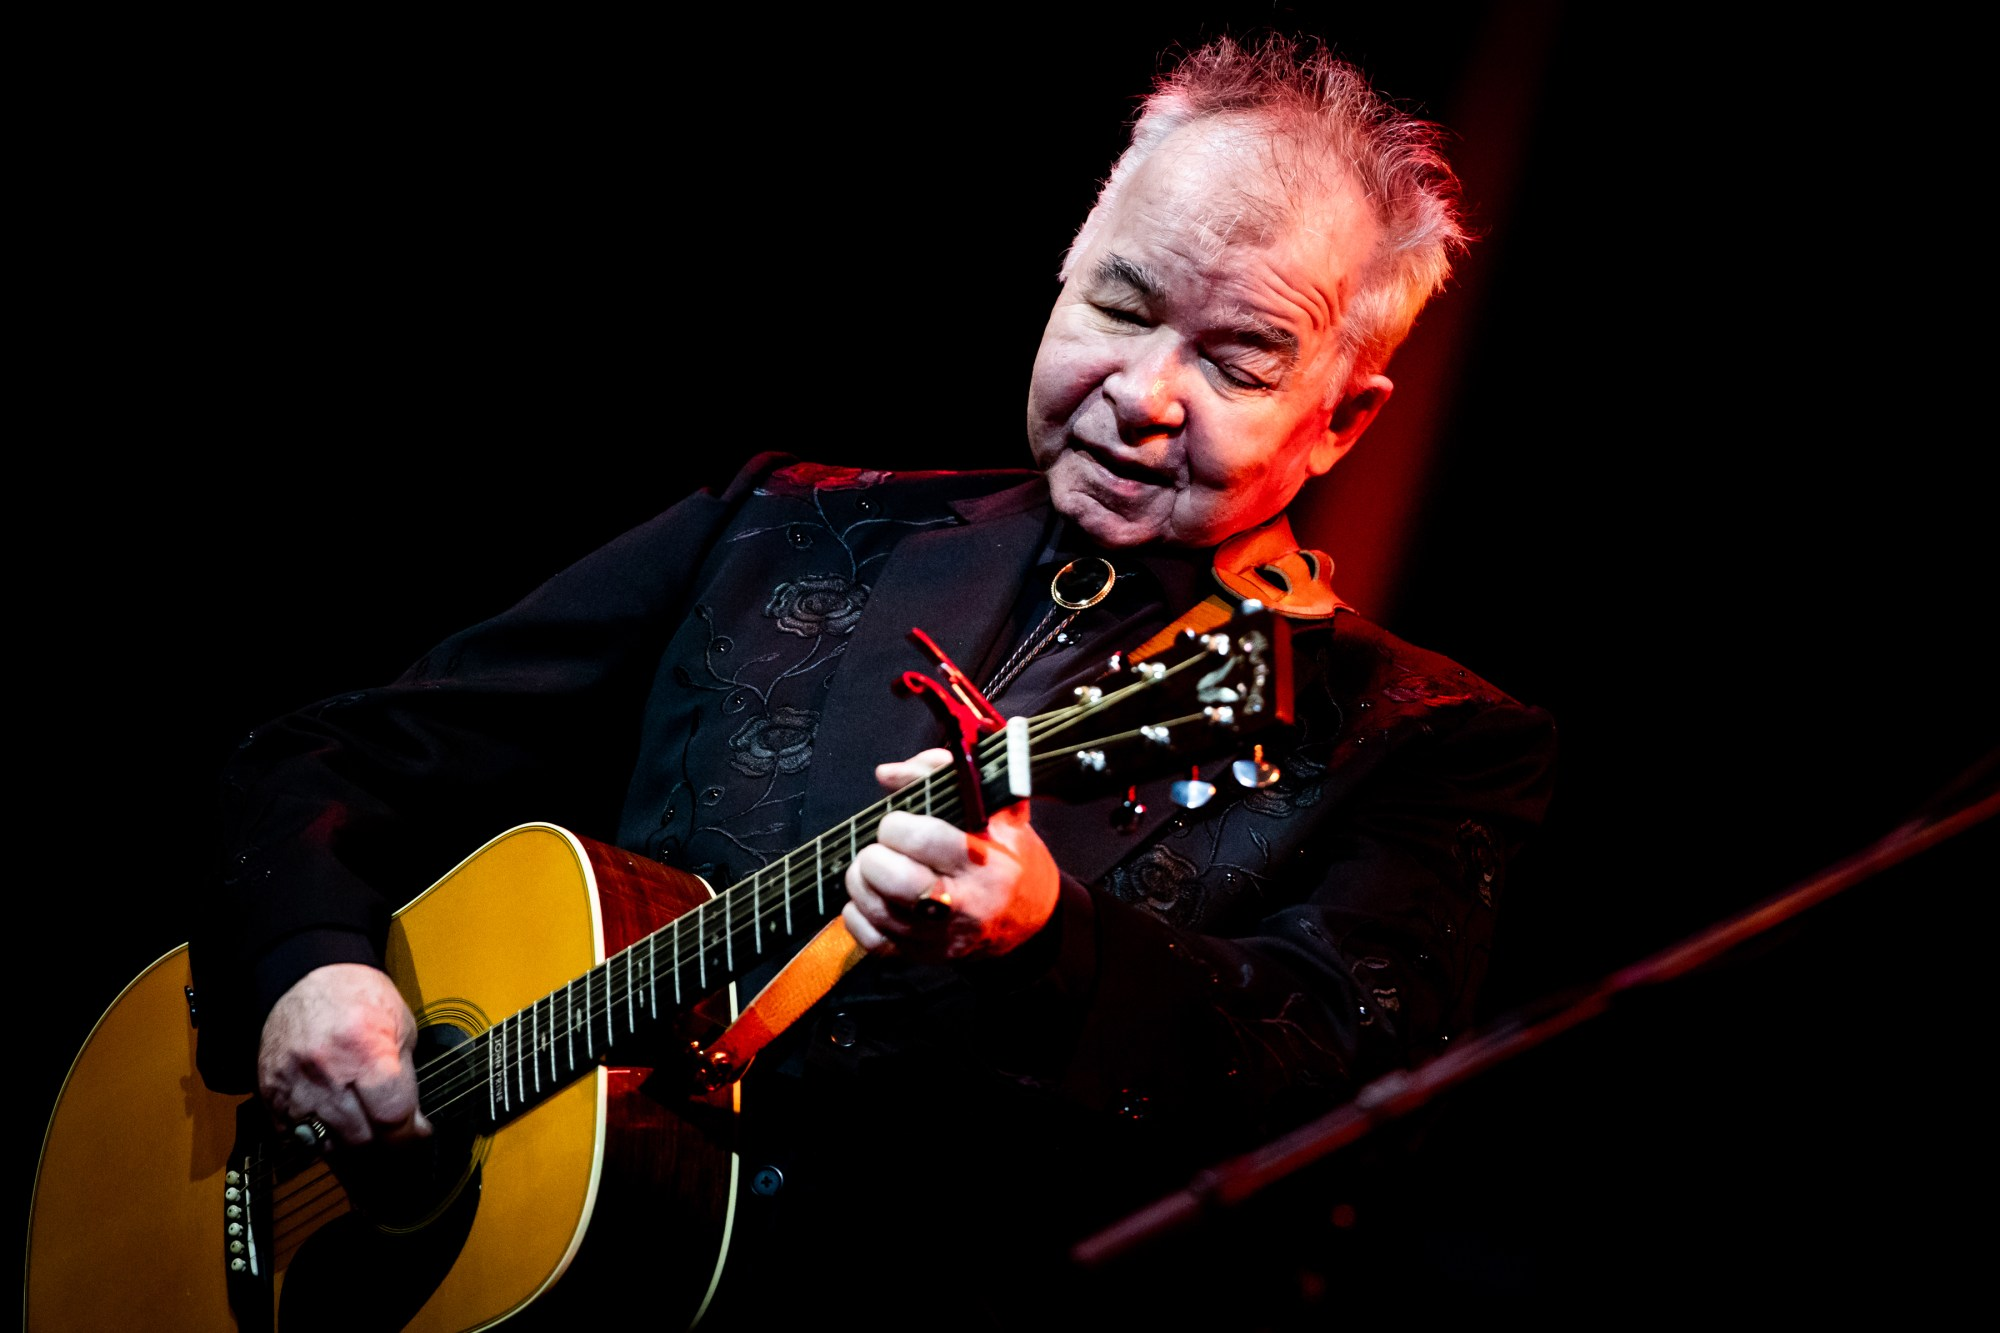 John Prine performs at John Anson Ford Amphitheatre on Oct. 1, 2019 in Hollywood. (Rich Fury/Getty Images)